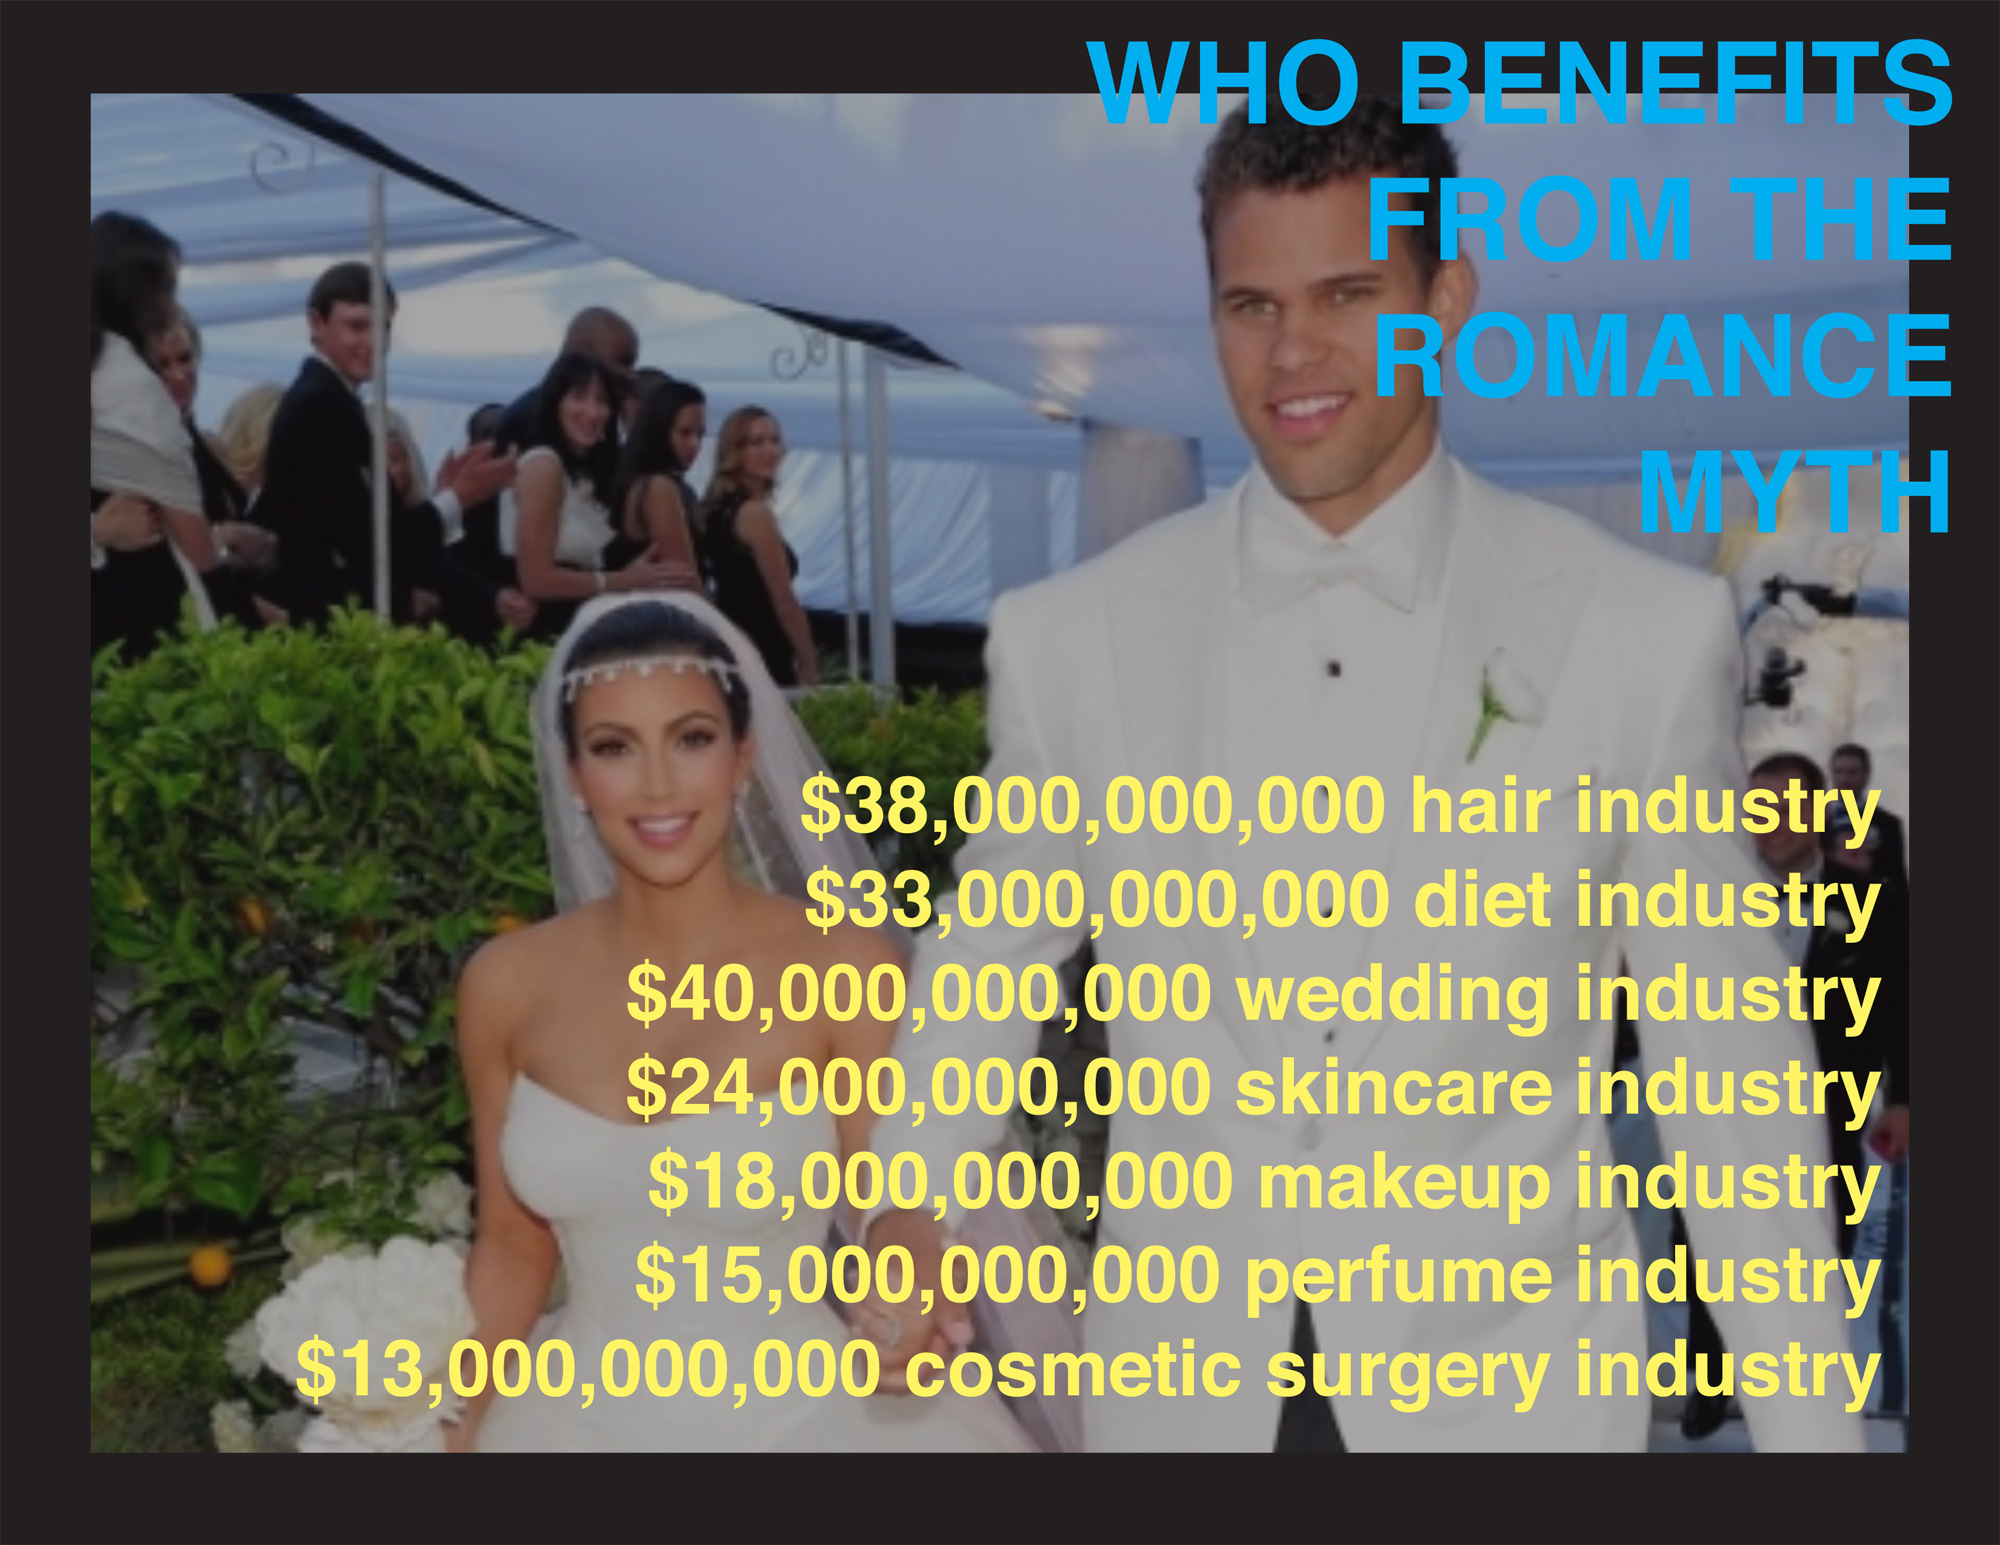 Image of Kim Kardashian and Chris Humphries at their wedding with text reading 'Who Benefits from the Romance Myth - 38 billion dollar hair industry, 33 billion dollar diet industry, 40 billion dollar wedding industry, 24 billion dollar skincare industry, 18 billion dollar makeup industry, 15 billion dollar perfume industry, 13 billion dollar cosmetic surgery industry'